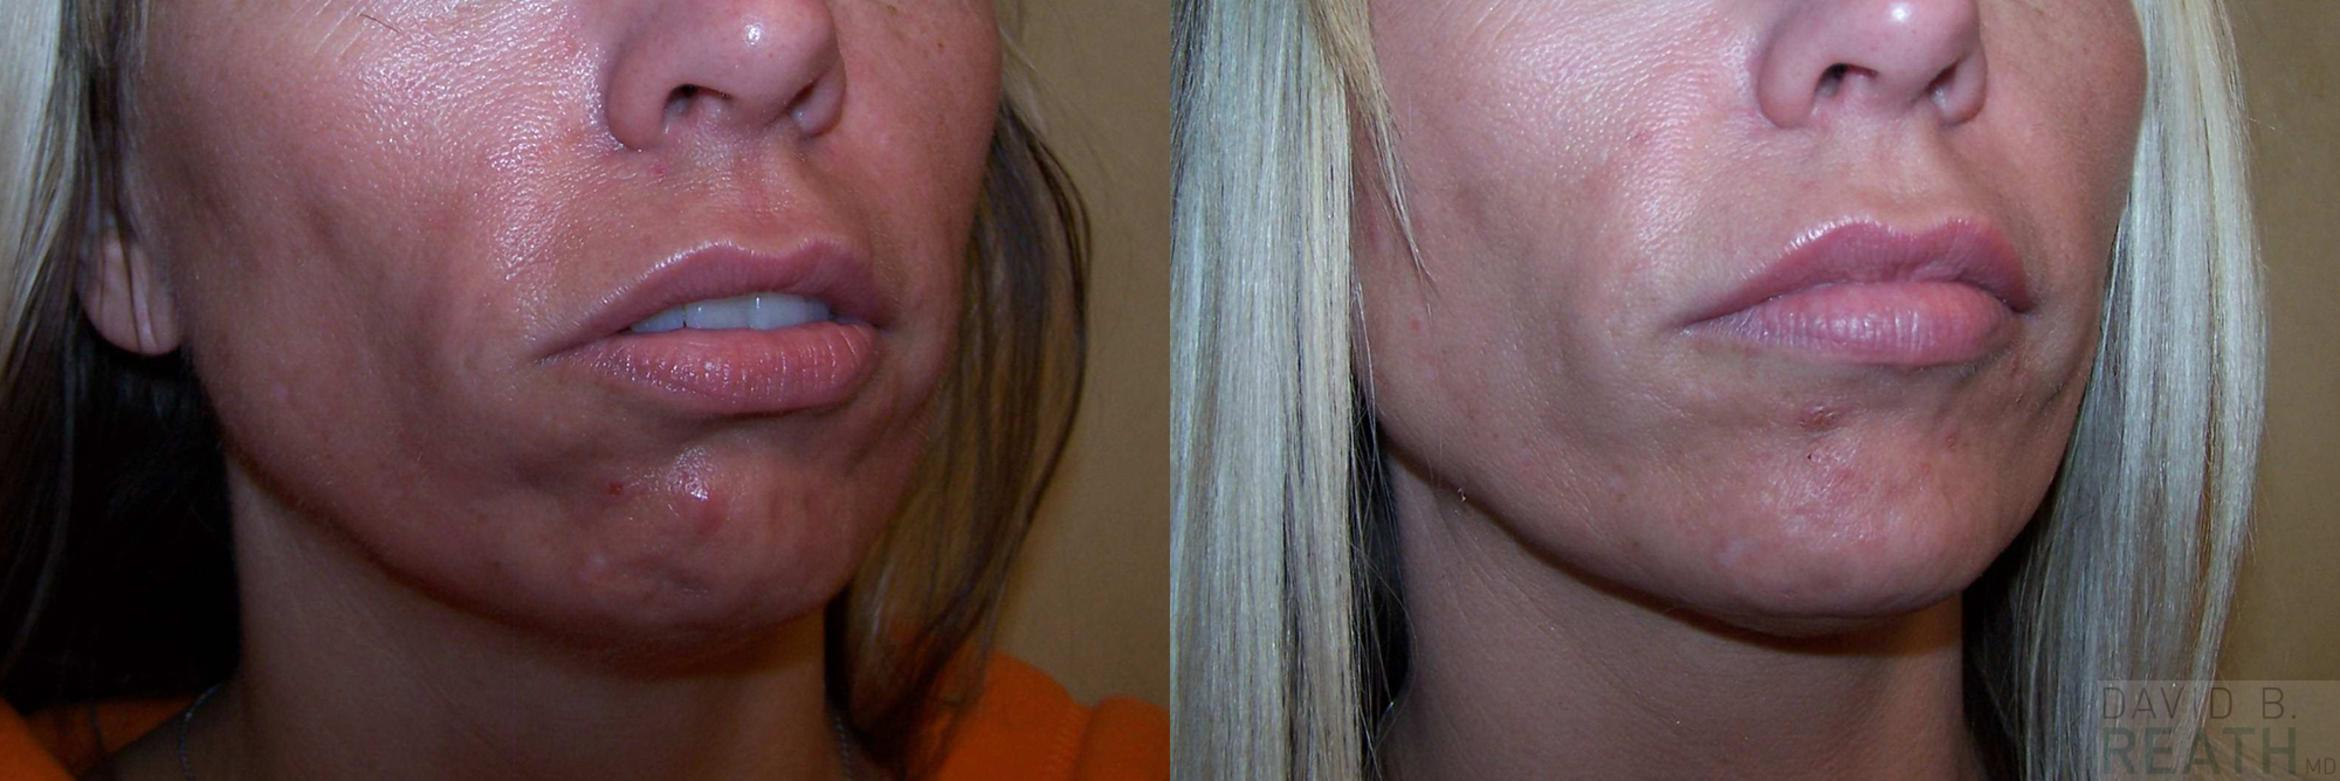 Botox Before & After Photo | Knoxville, Tennessee | David B. Reath, MD